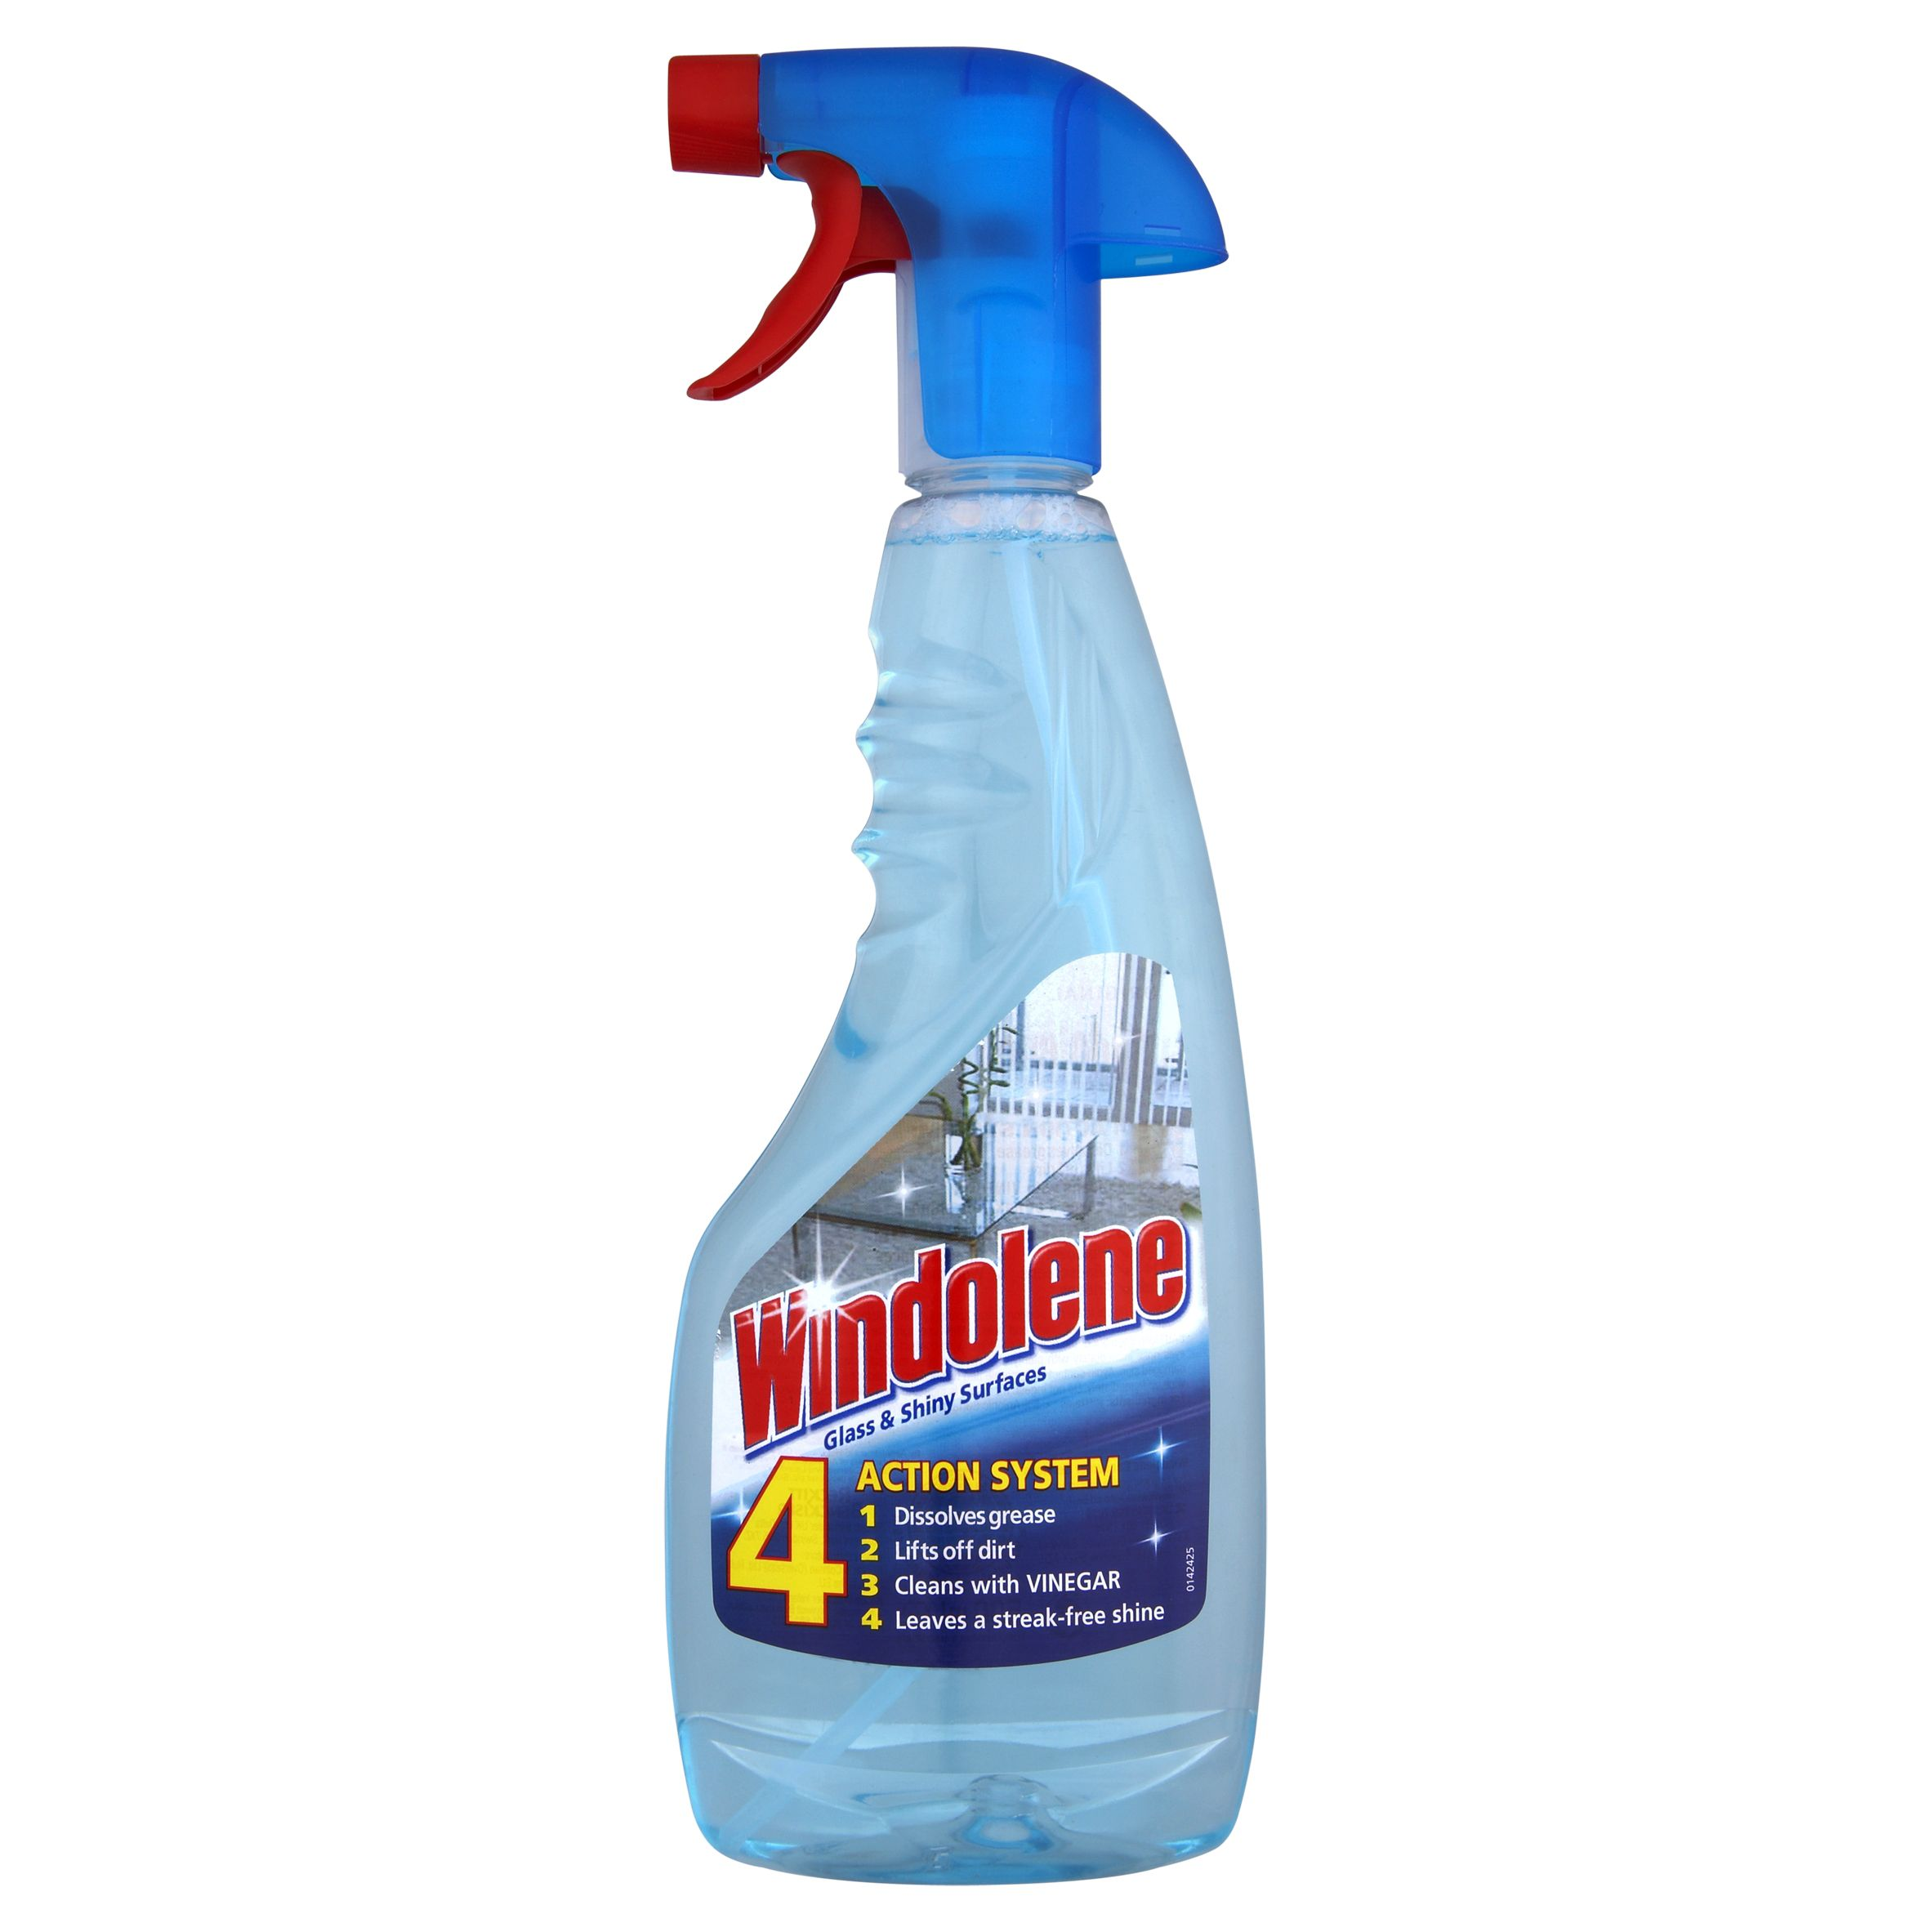 Windolene 4 Action Window Cleaner Spray 500 Ml Departments Diy At B Amp Q